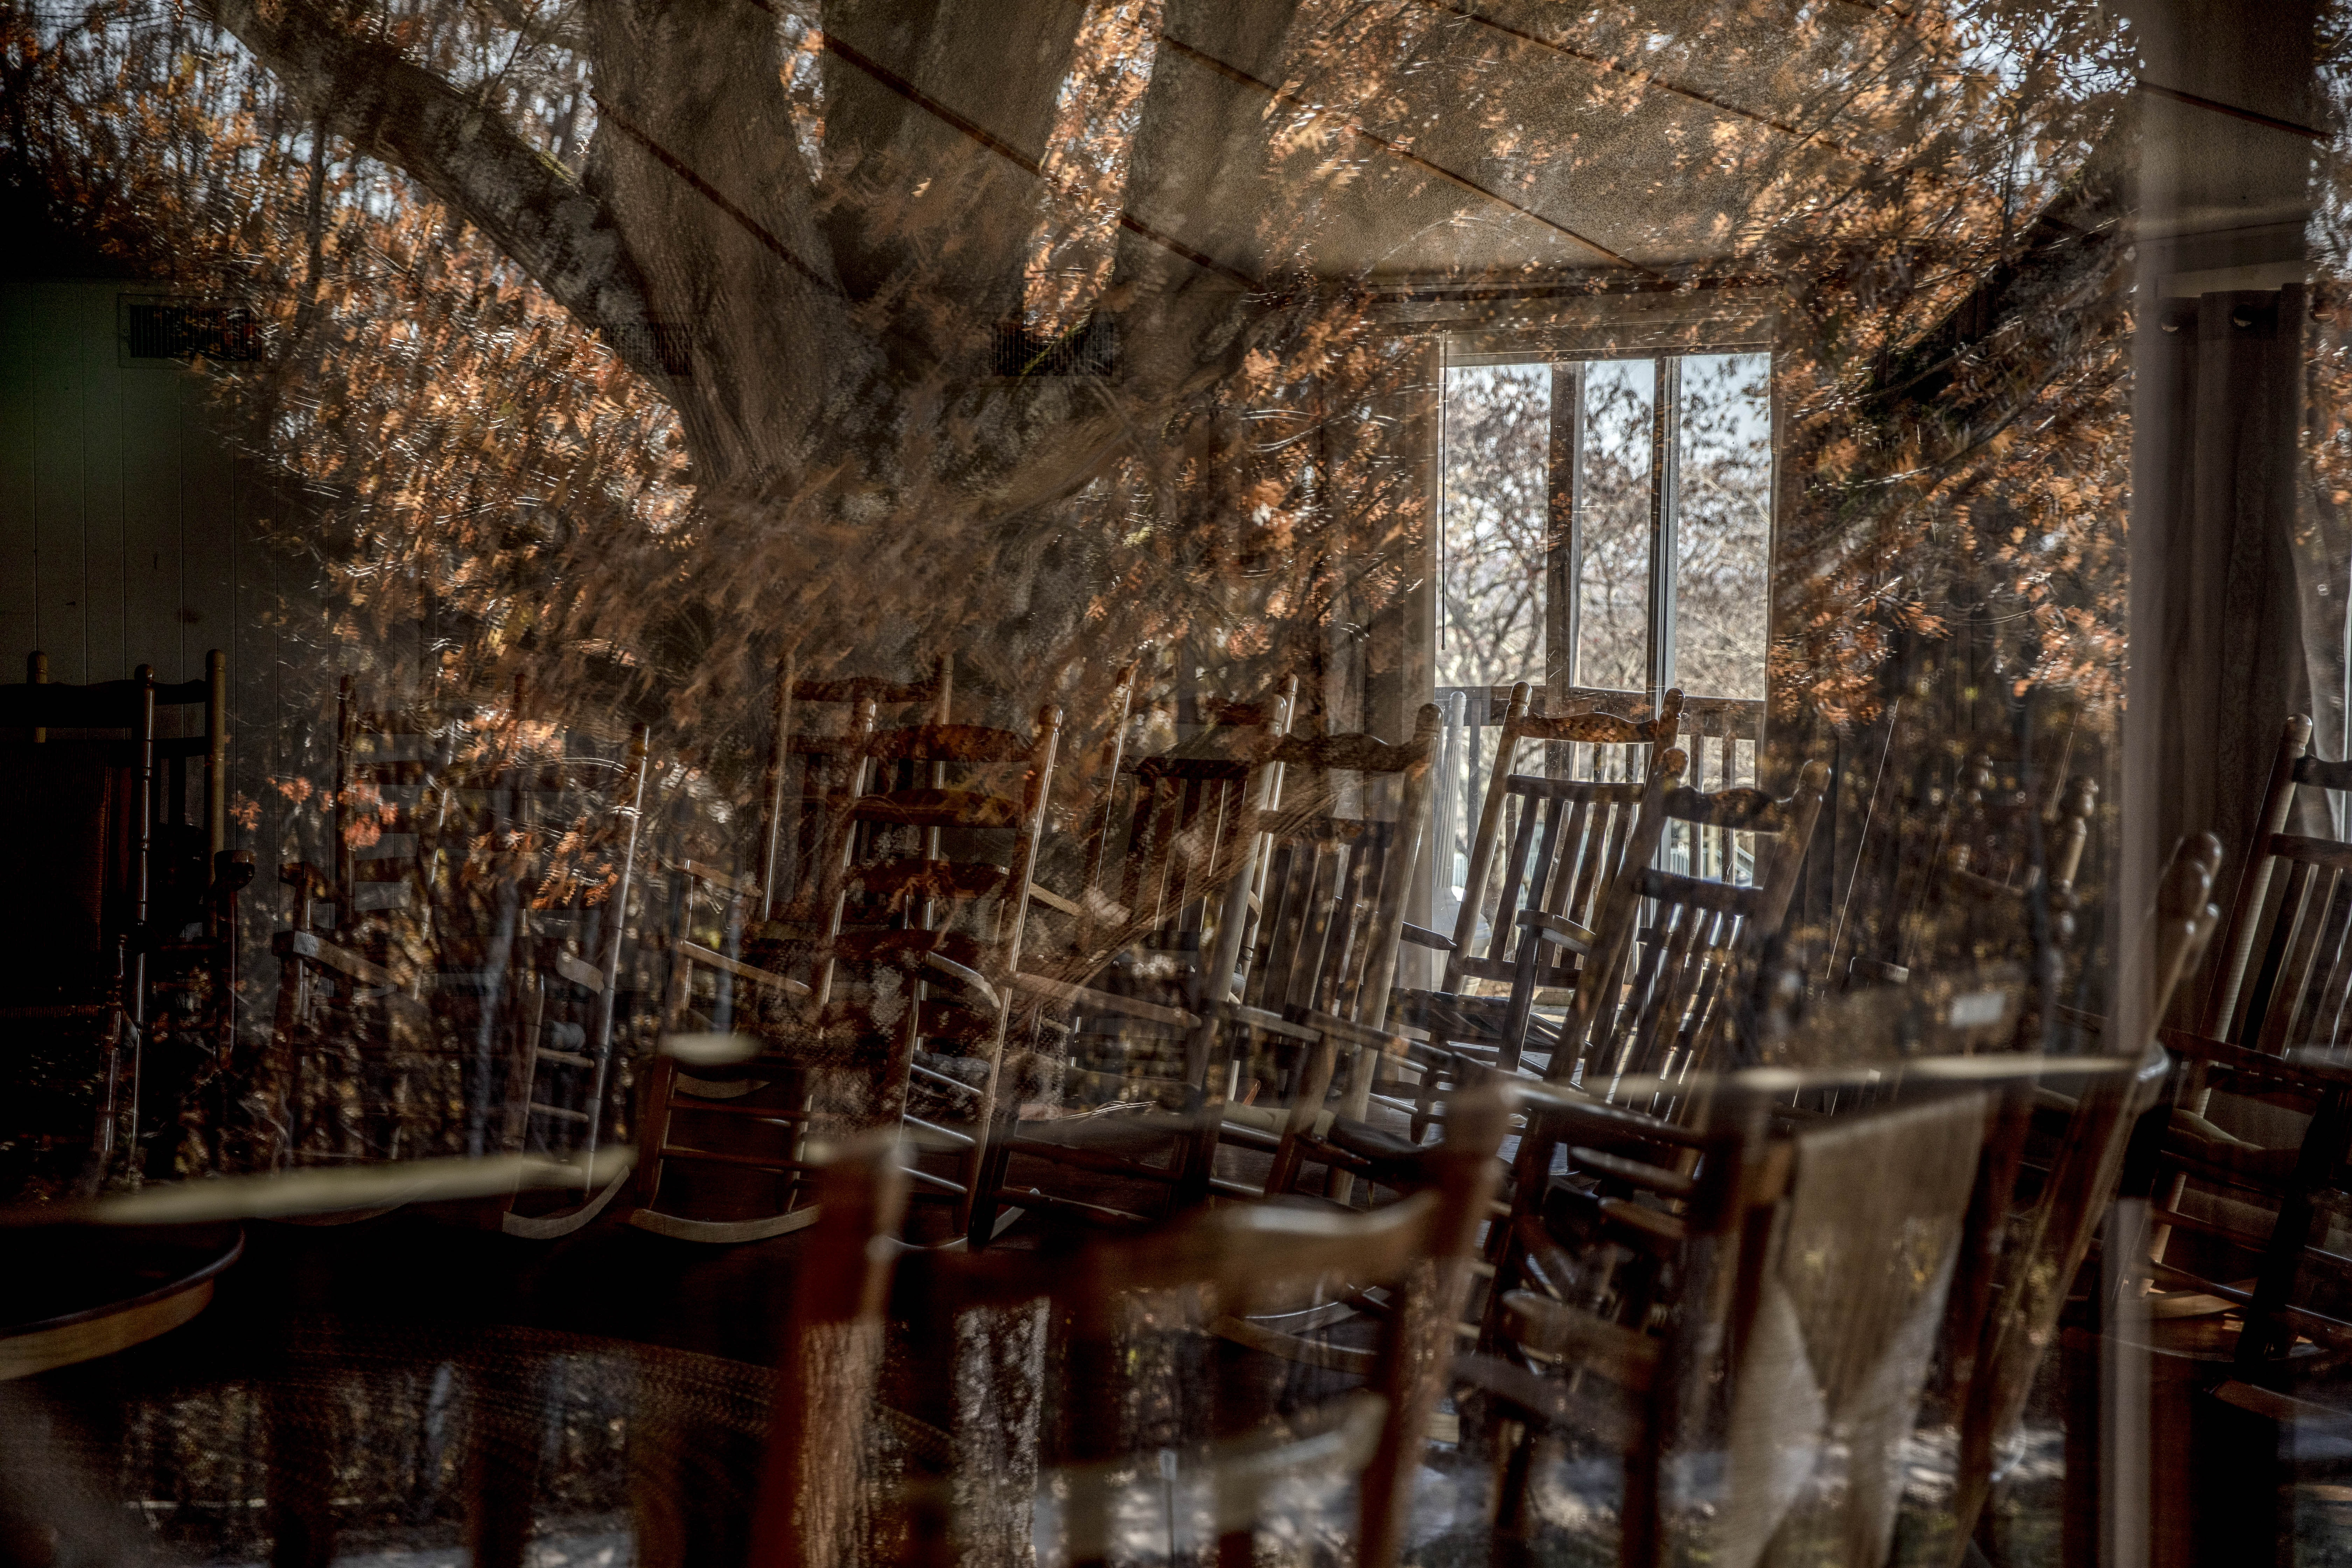 November 18, 2019 - New Market , TN: The workshop space at the Highlander Research and Education Center as seen through a glass reflecting trees outside. .